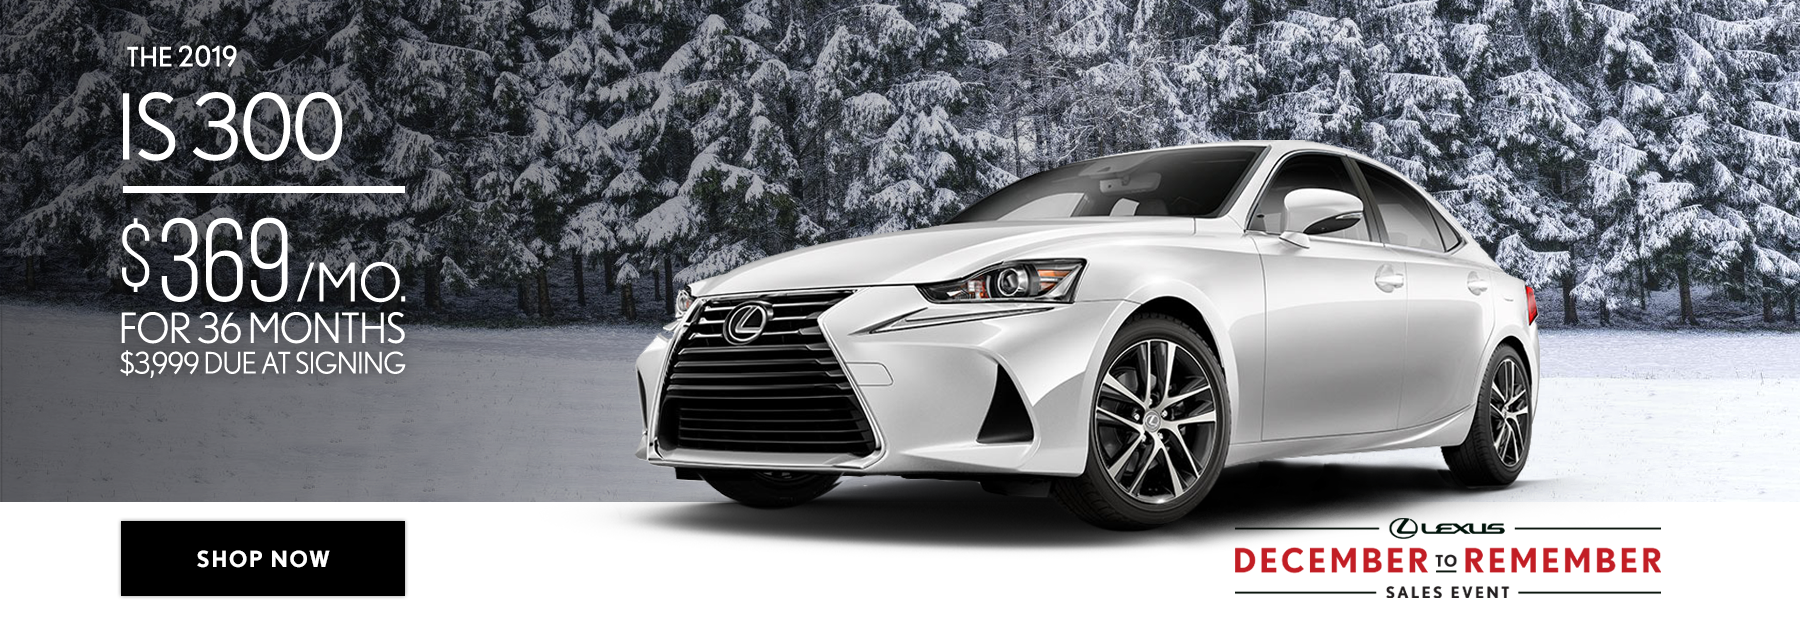 lease-special-new-2019-lexus-is-300-cincinnati-ohio